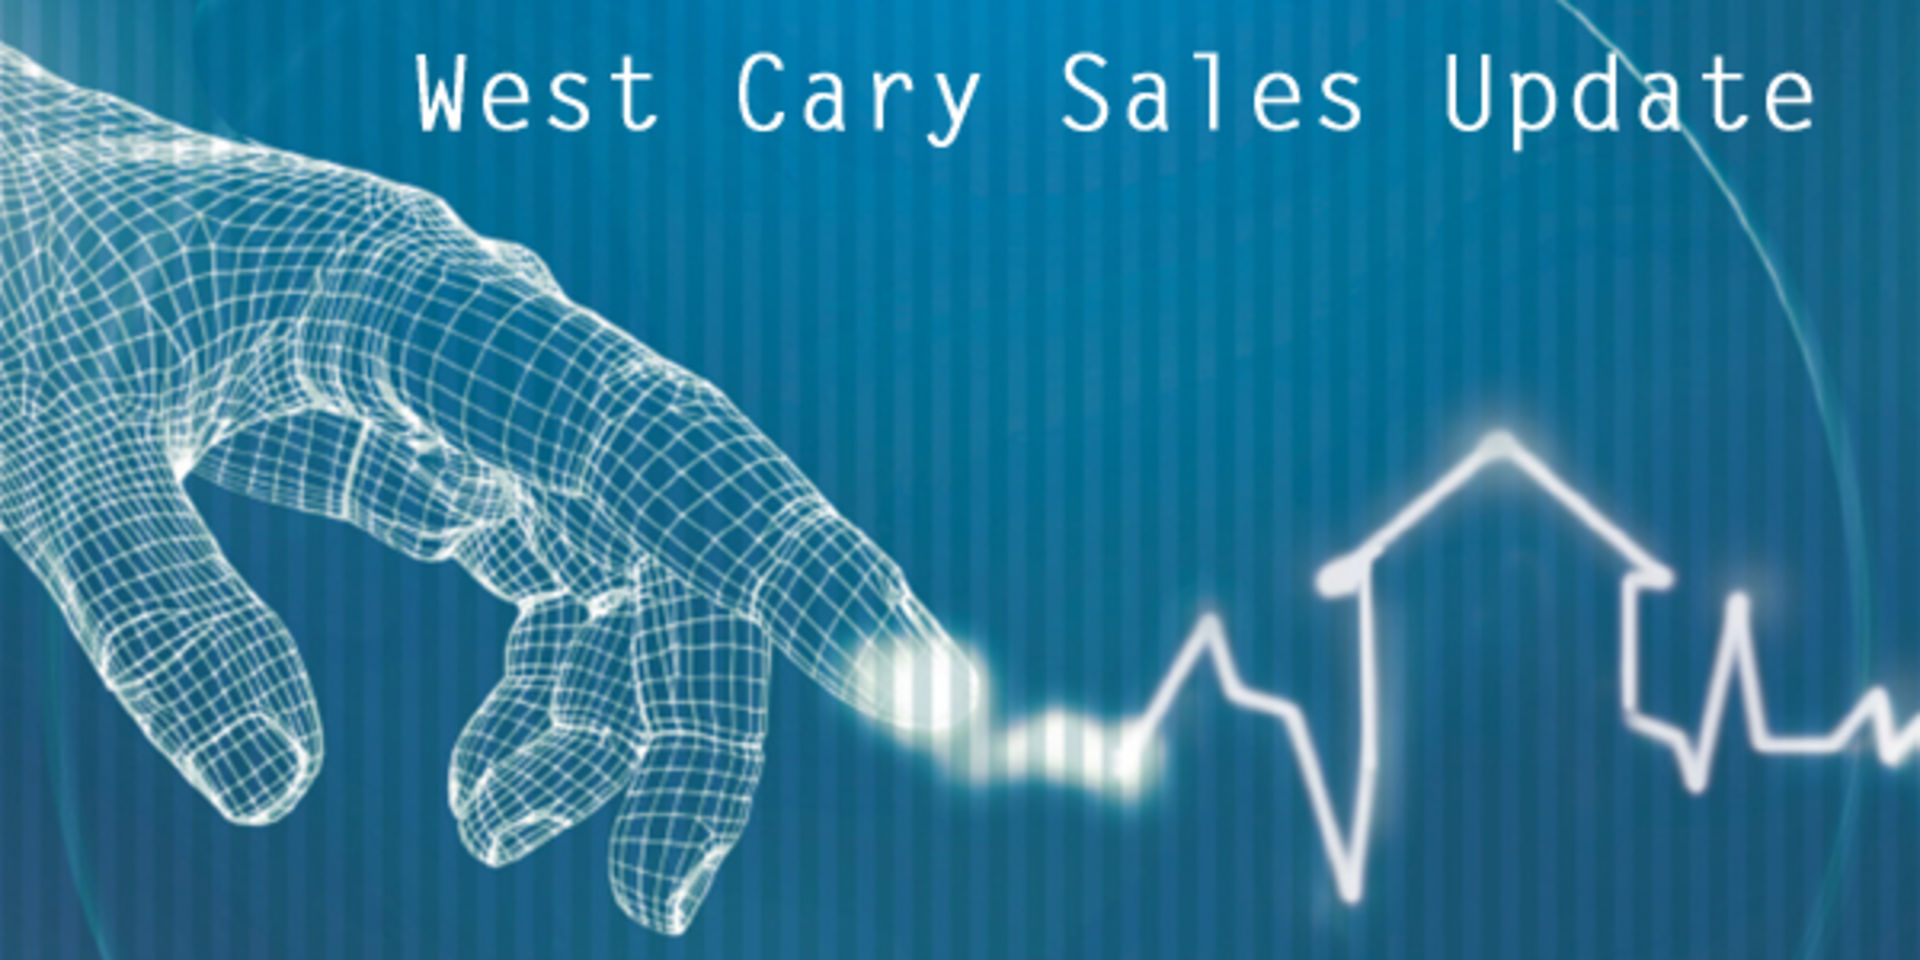 West Cary Sales Update